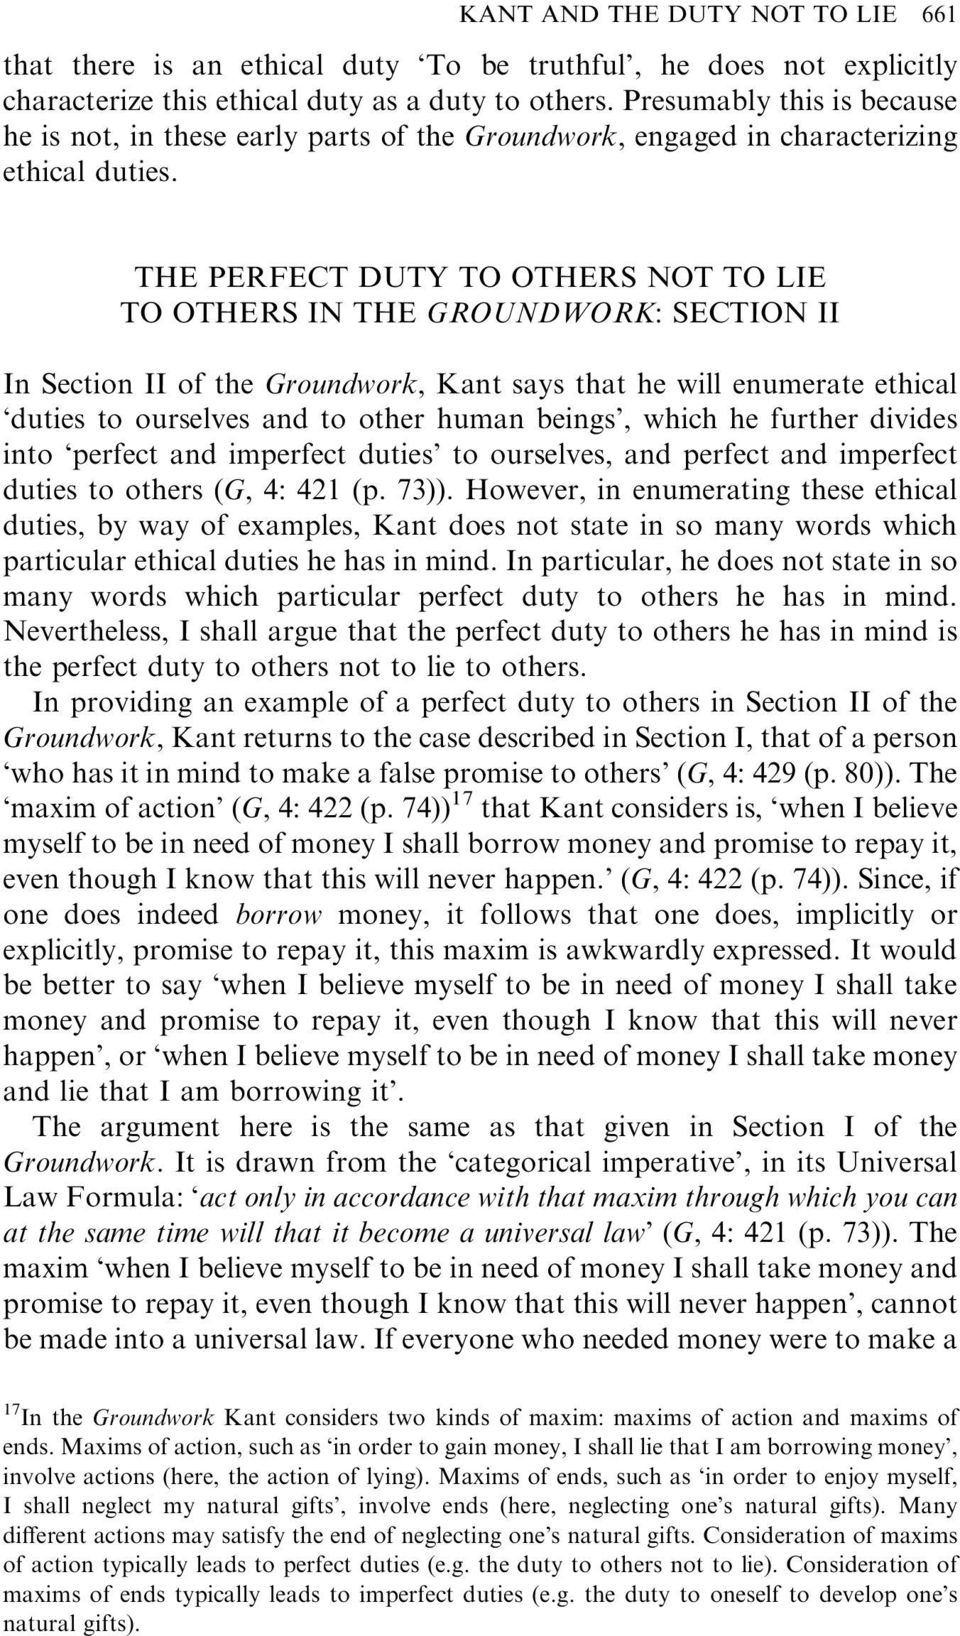 THE PERFECT DUTY TO OTHERS NOT TO LIE TO OTHERS IN THE GROUNDWORK: SECTION II In Section II of the Groundwork, Kant says that he will enumerate ethical duties to ourselves and to other human beings,